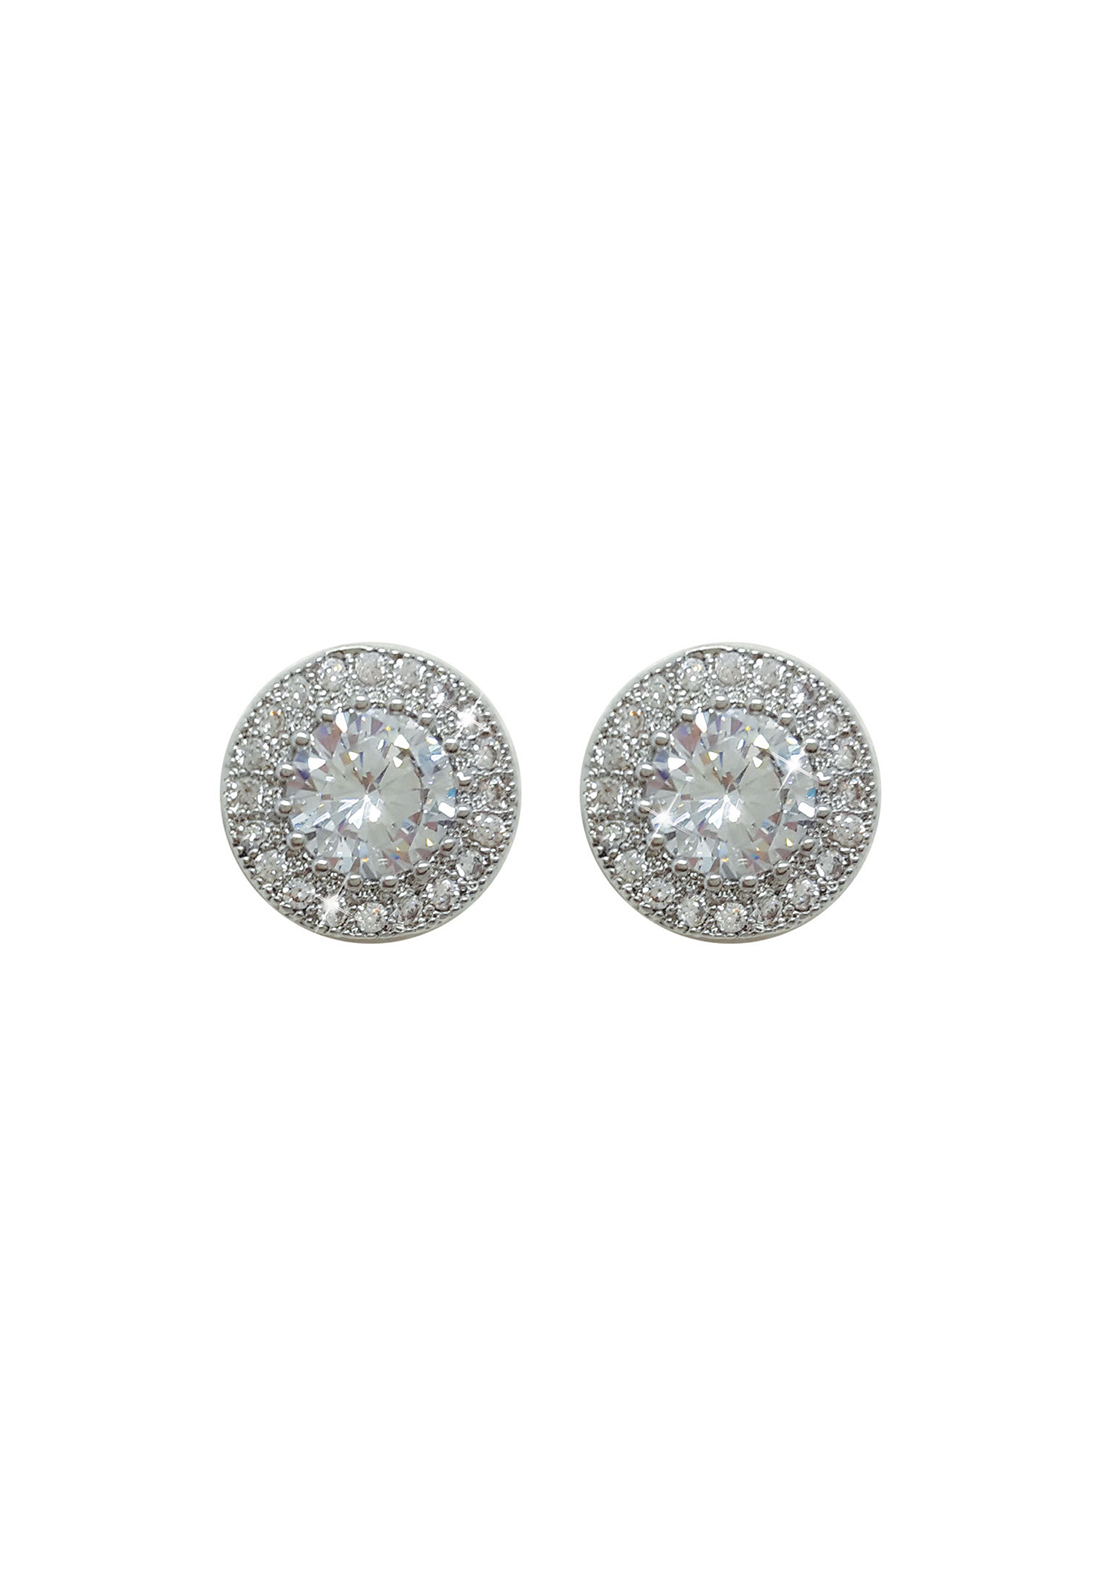 Tipperary Crystal Round Pave Stud Earrings, Silver